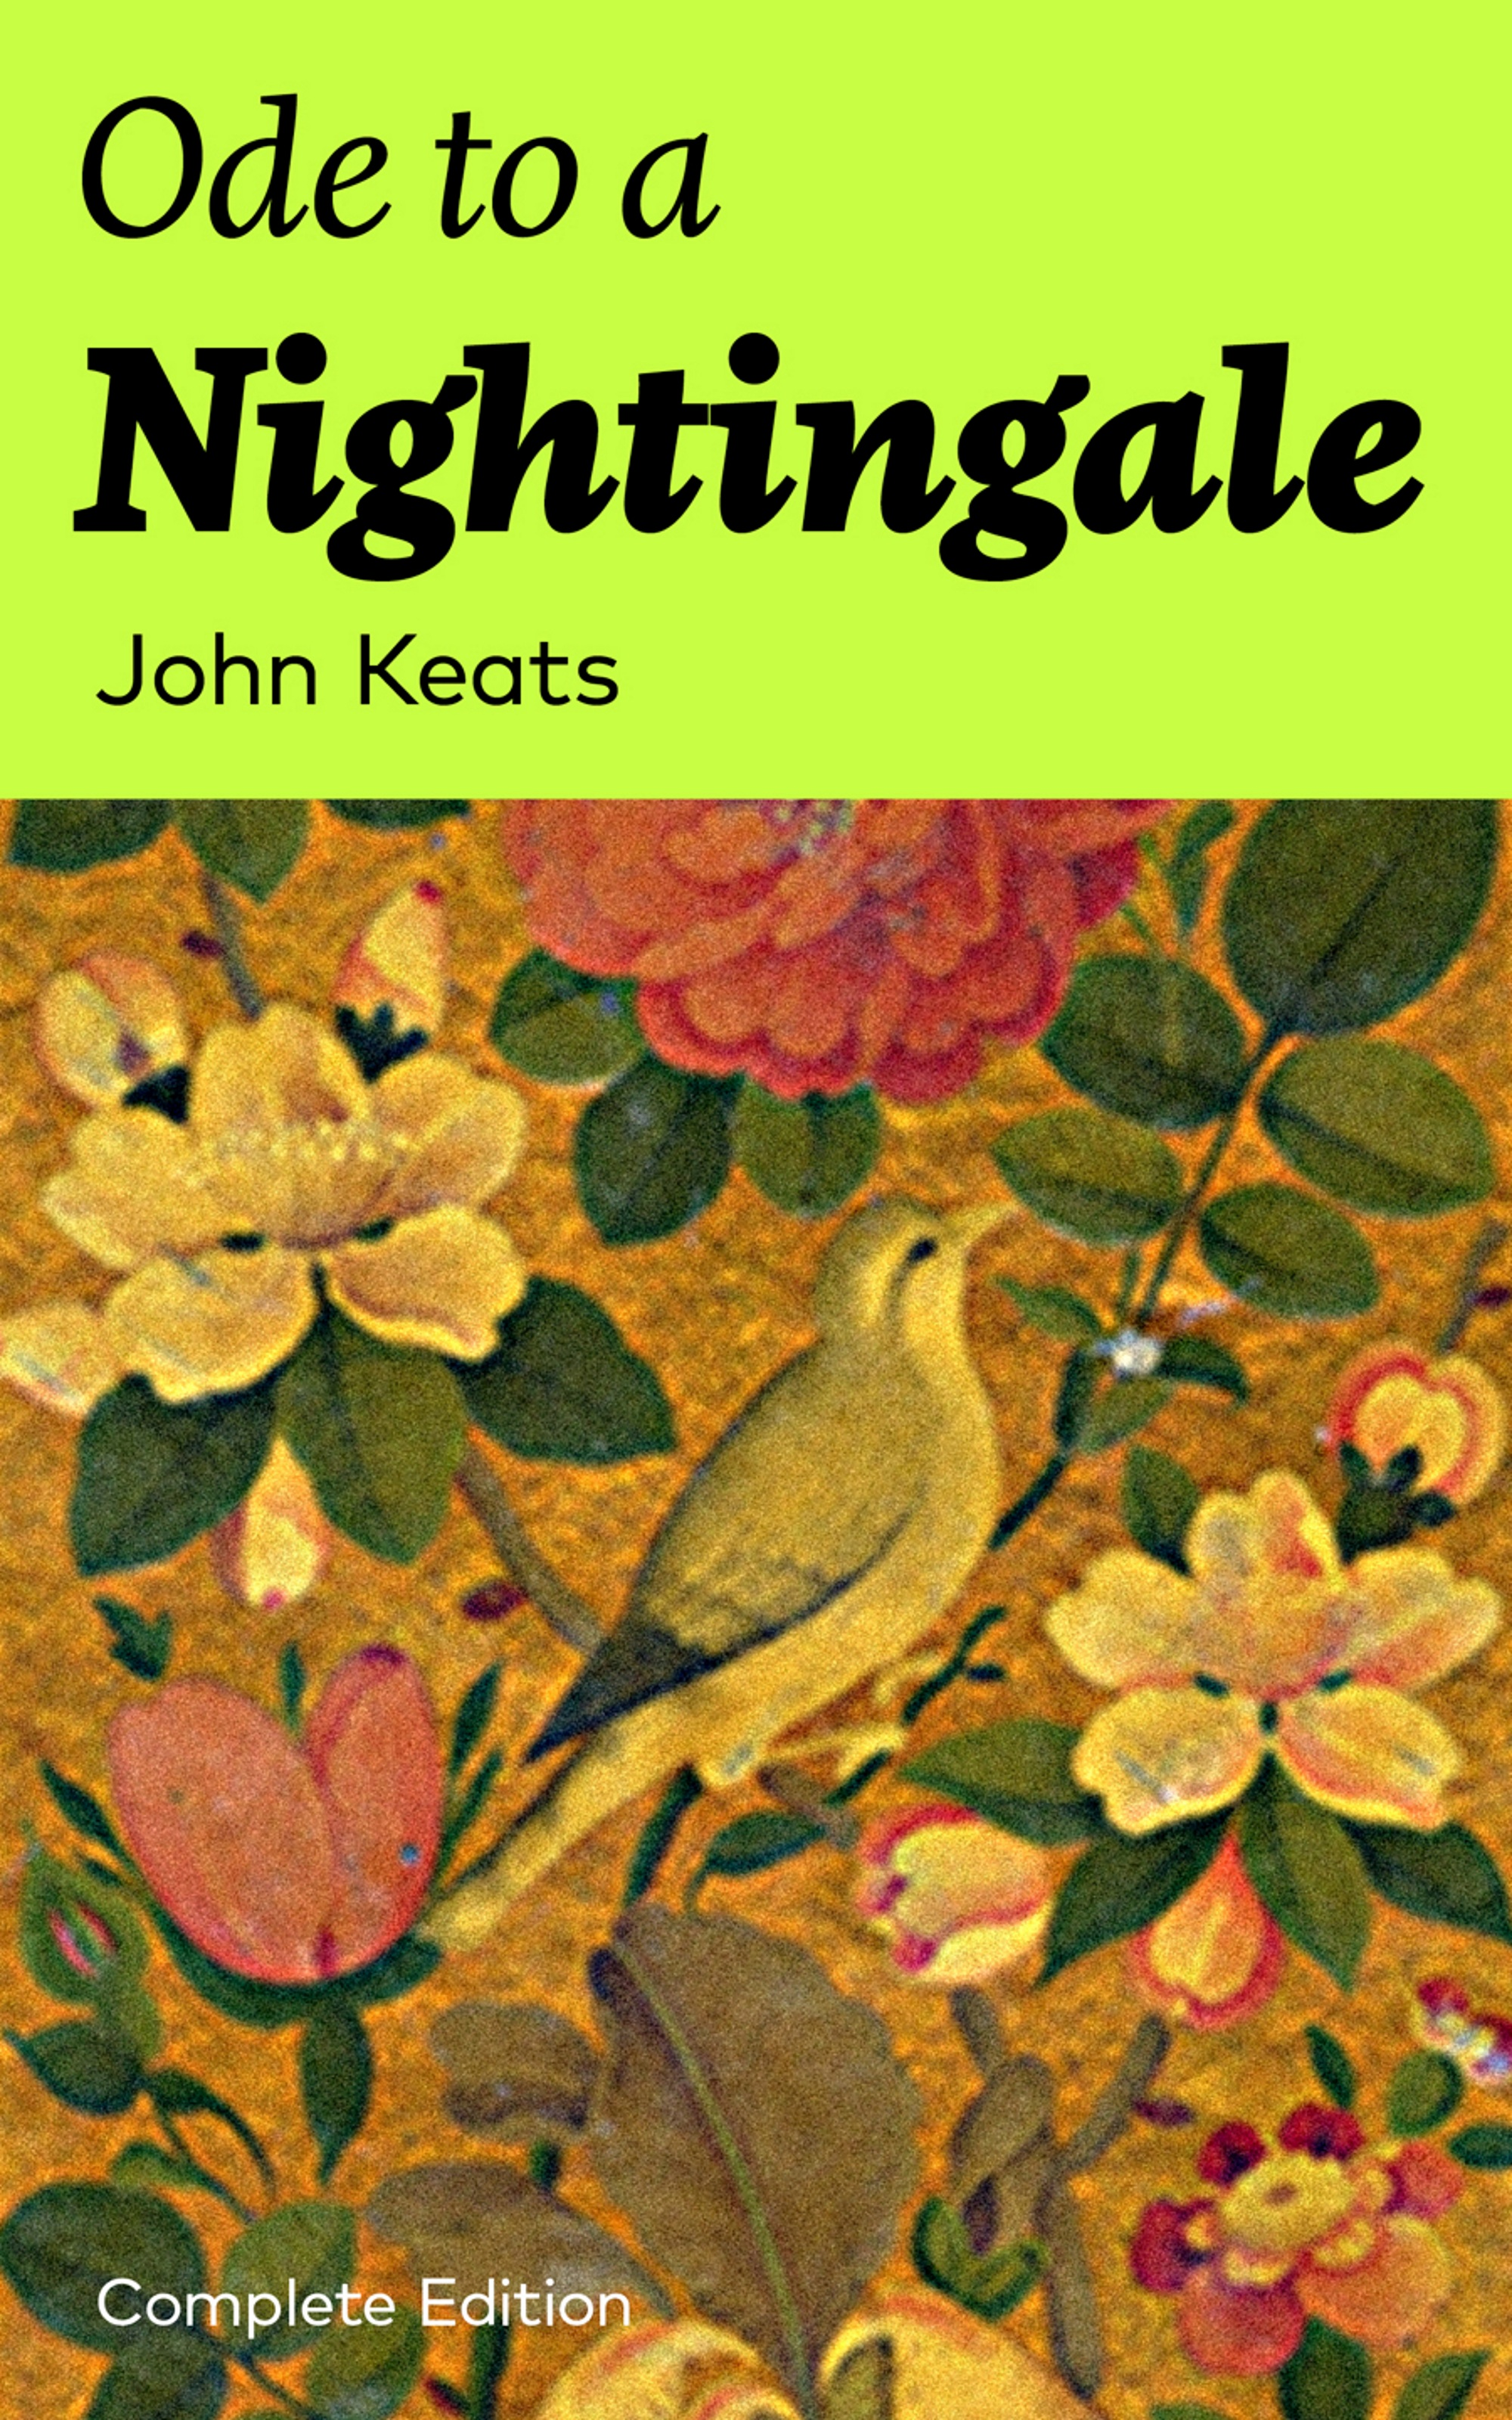 John Keats Ode to a Nightingale (Complete Edition) complete poems and selected letters of john keats